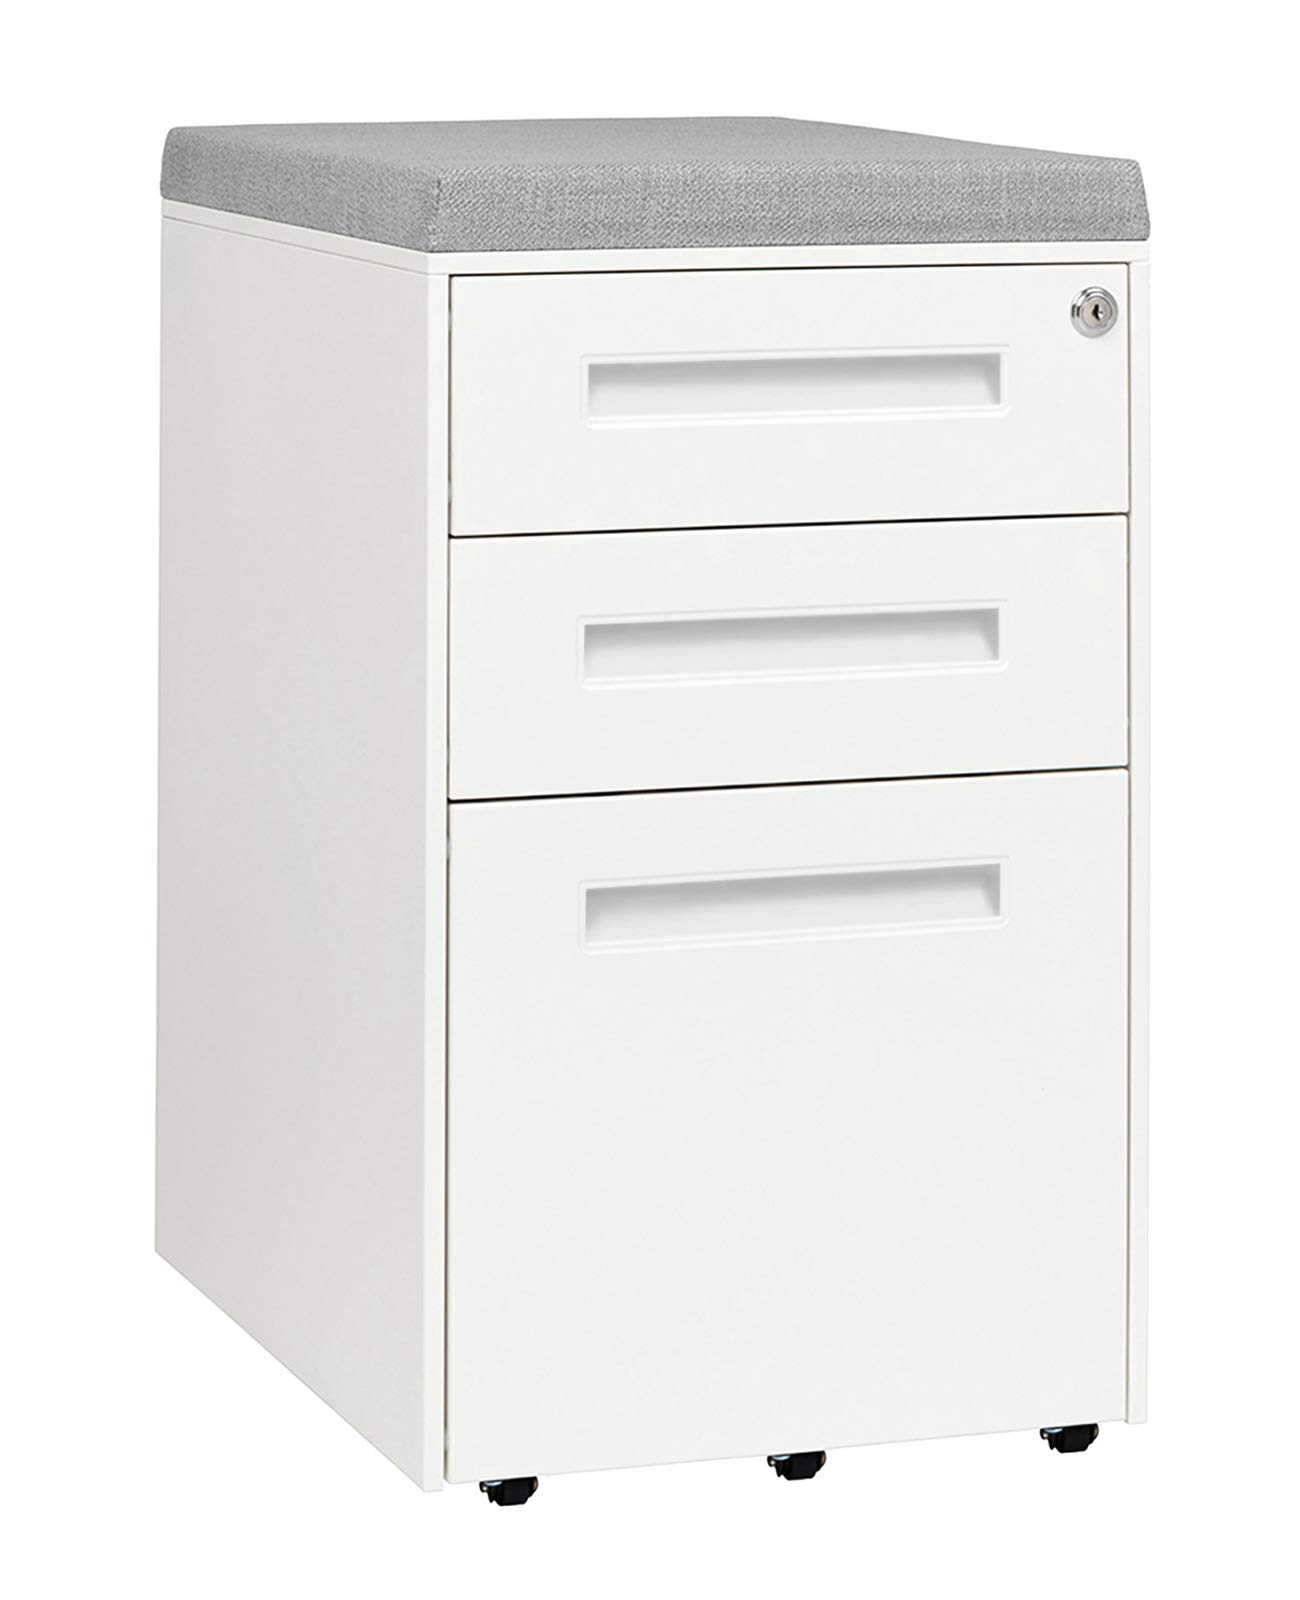 STOCKPILE Seated 3-Drawer Mobile File Cabinet with Removable Magnetic Cushion Seat, Commercial-Grade, Pre-Assembled (White with Grey Cushion) by Laura Davidson Furniture